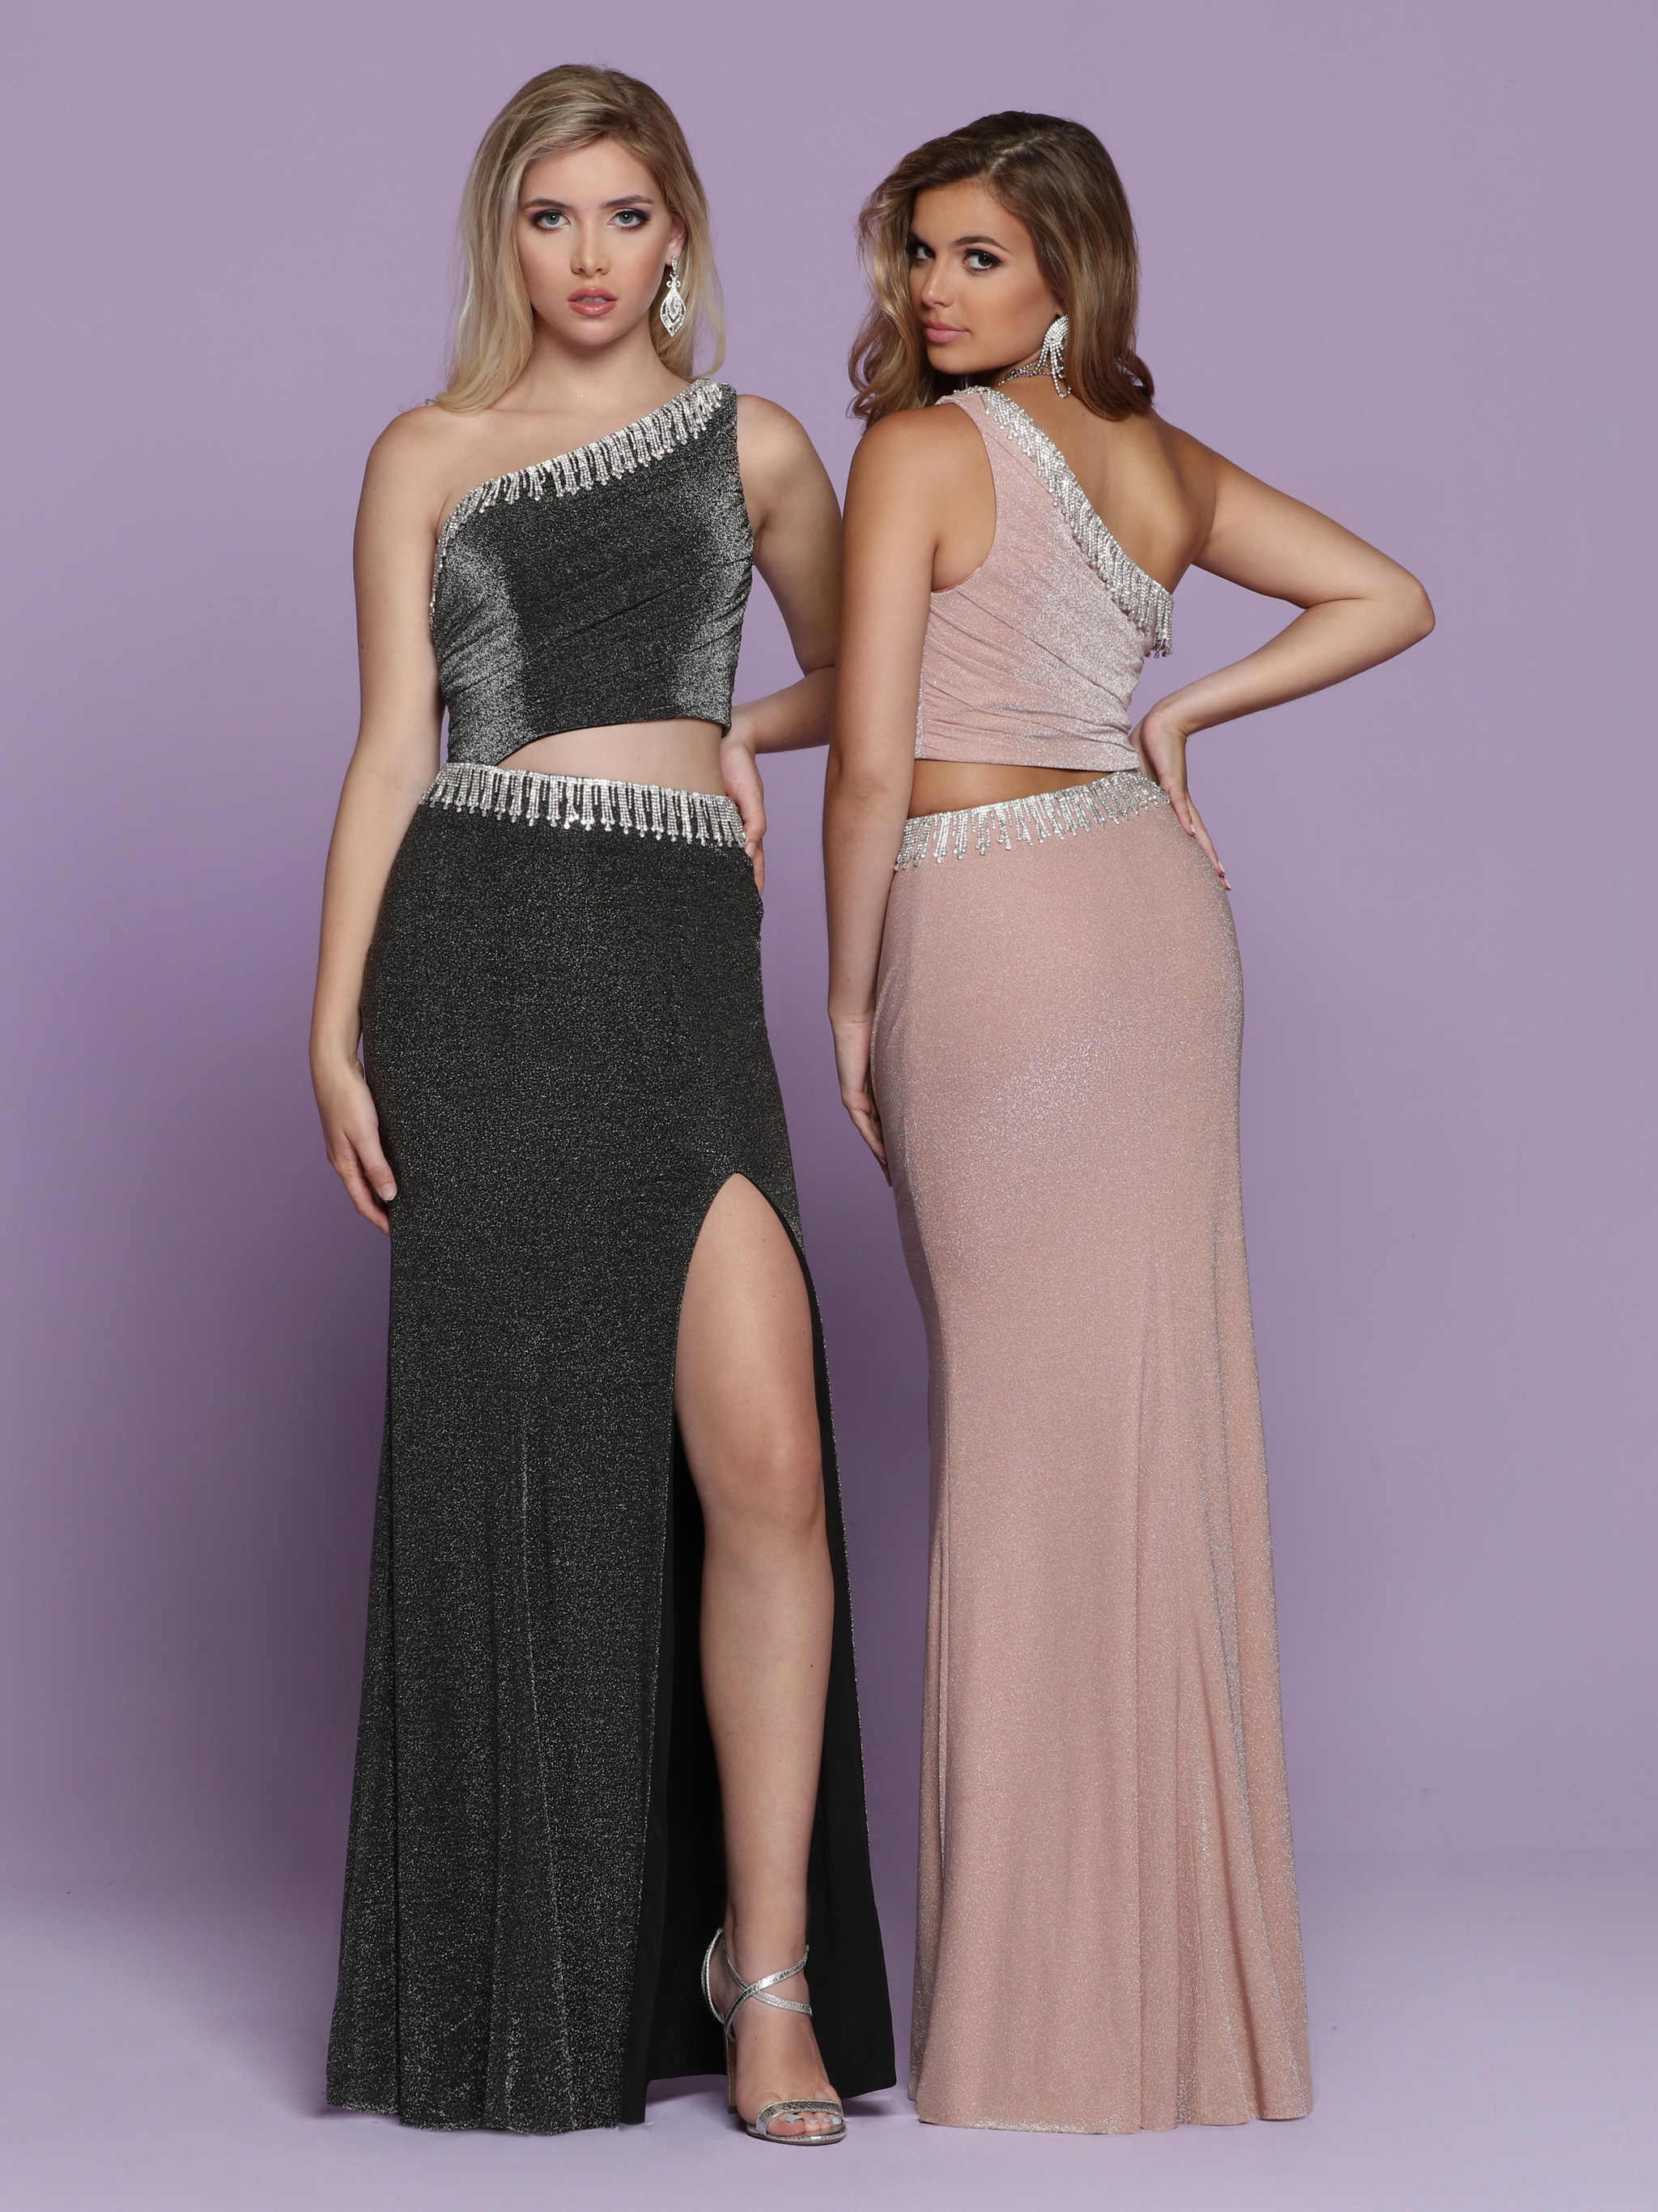 Top Prom Dress Trends for 2020 – Sparkle Prom Blog